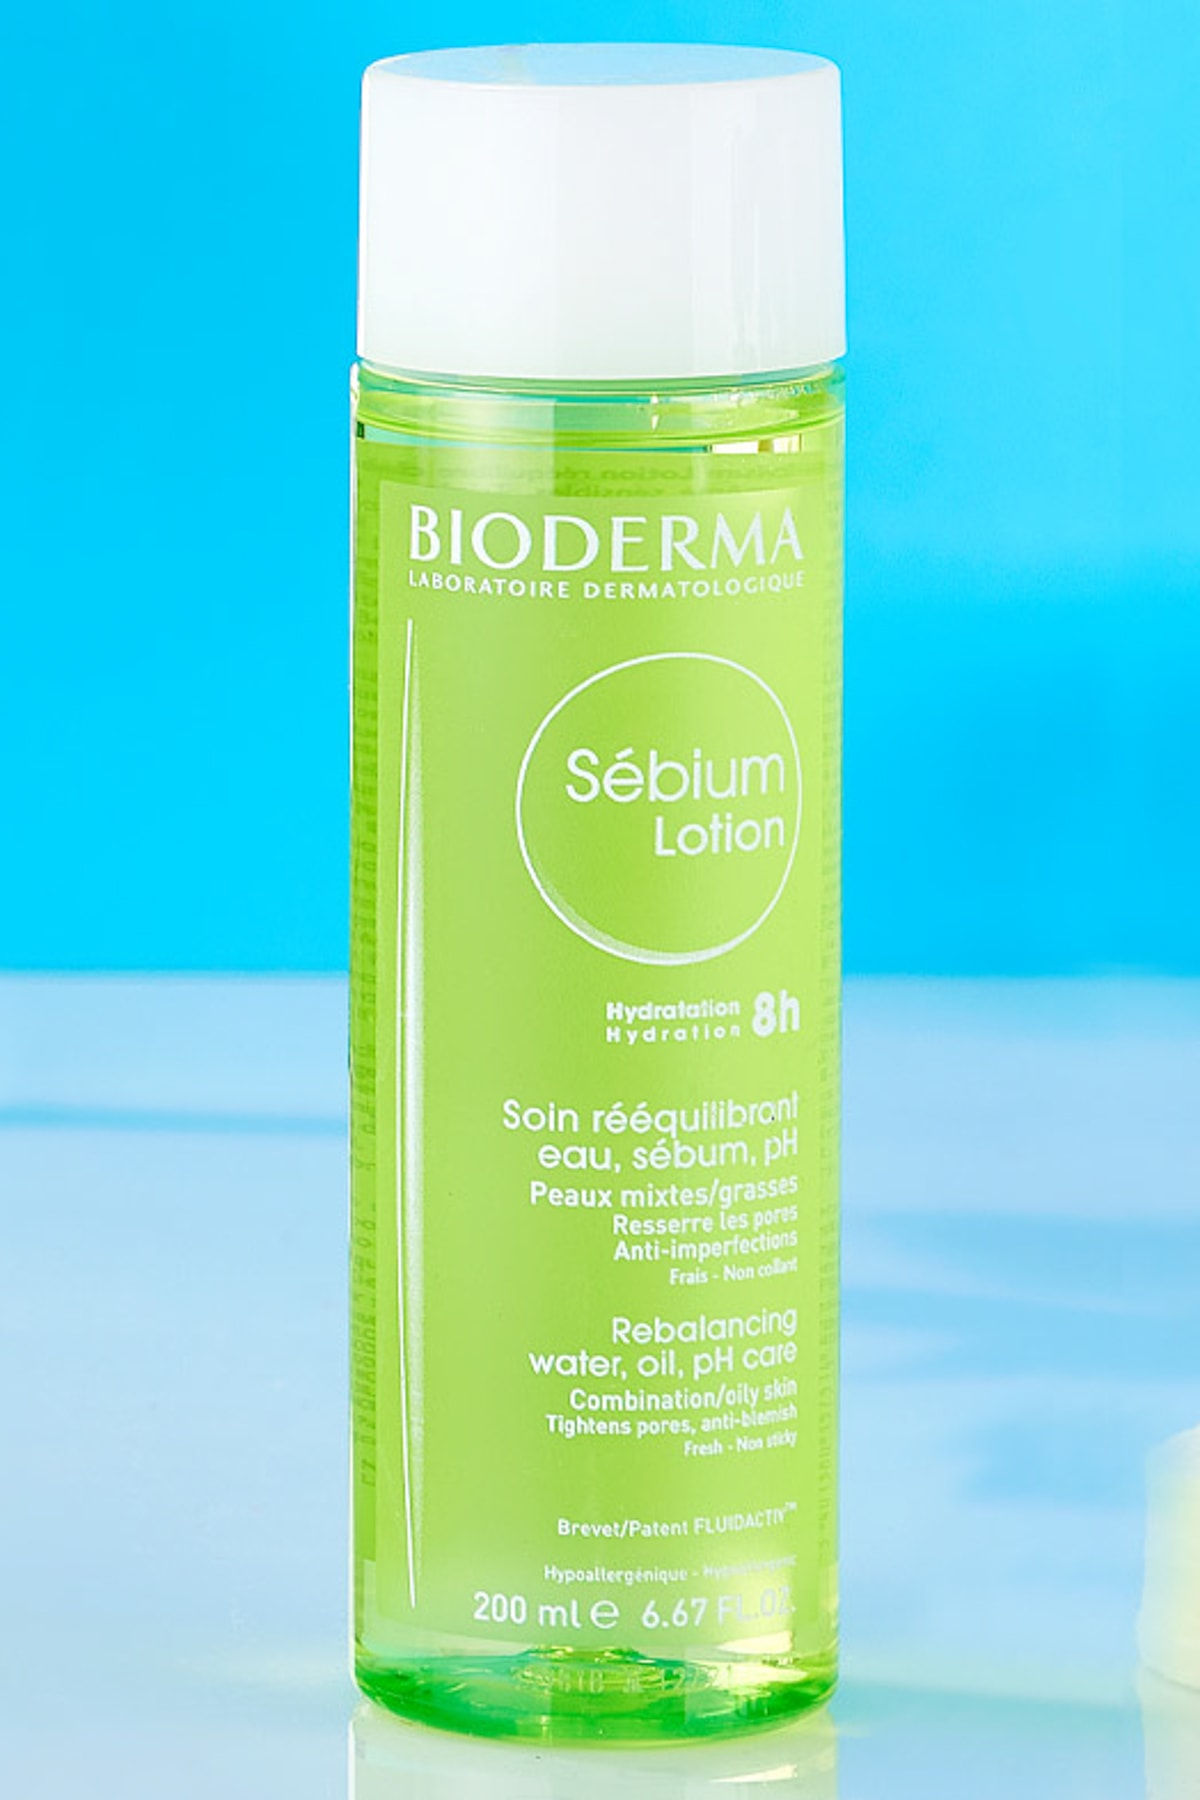 Bioderma Sébium Lotion 200 ml 2